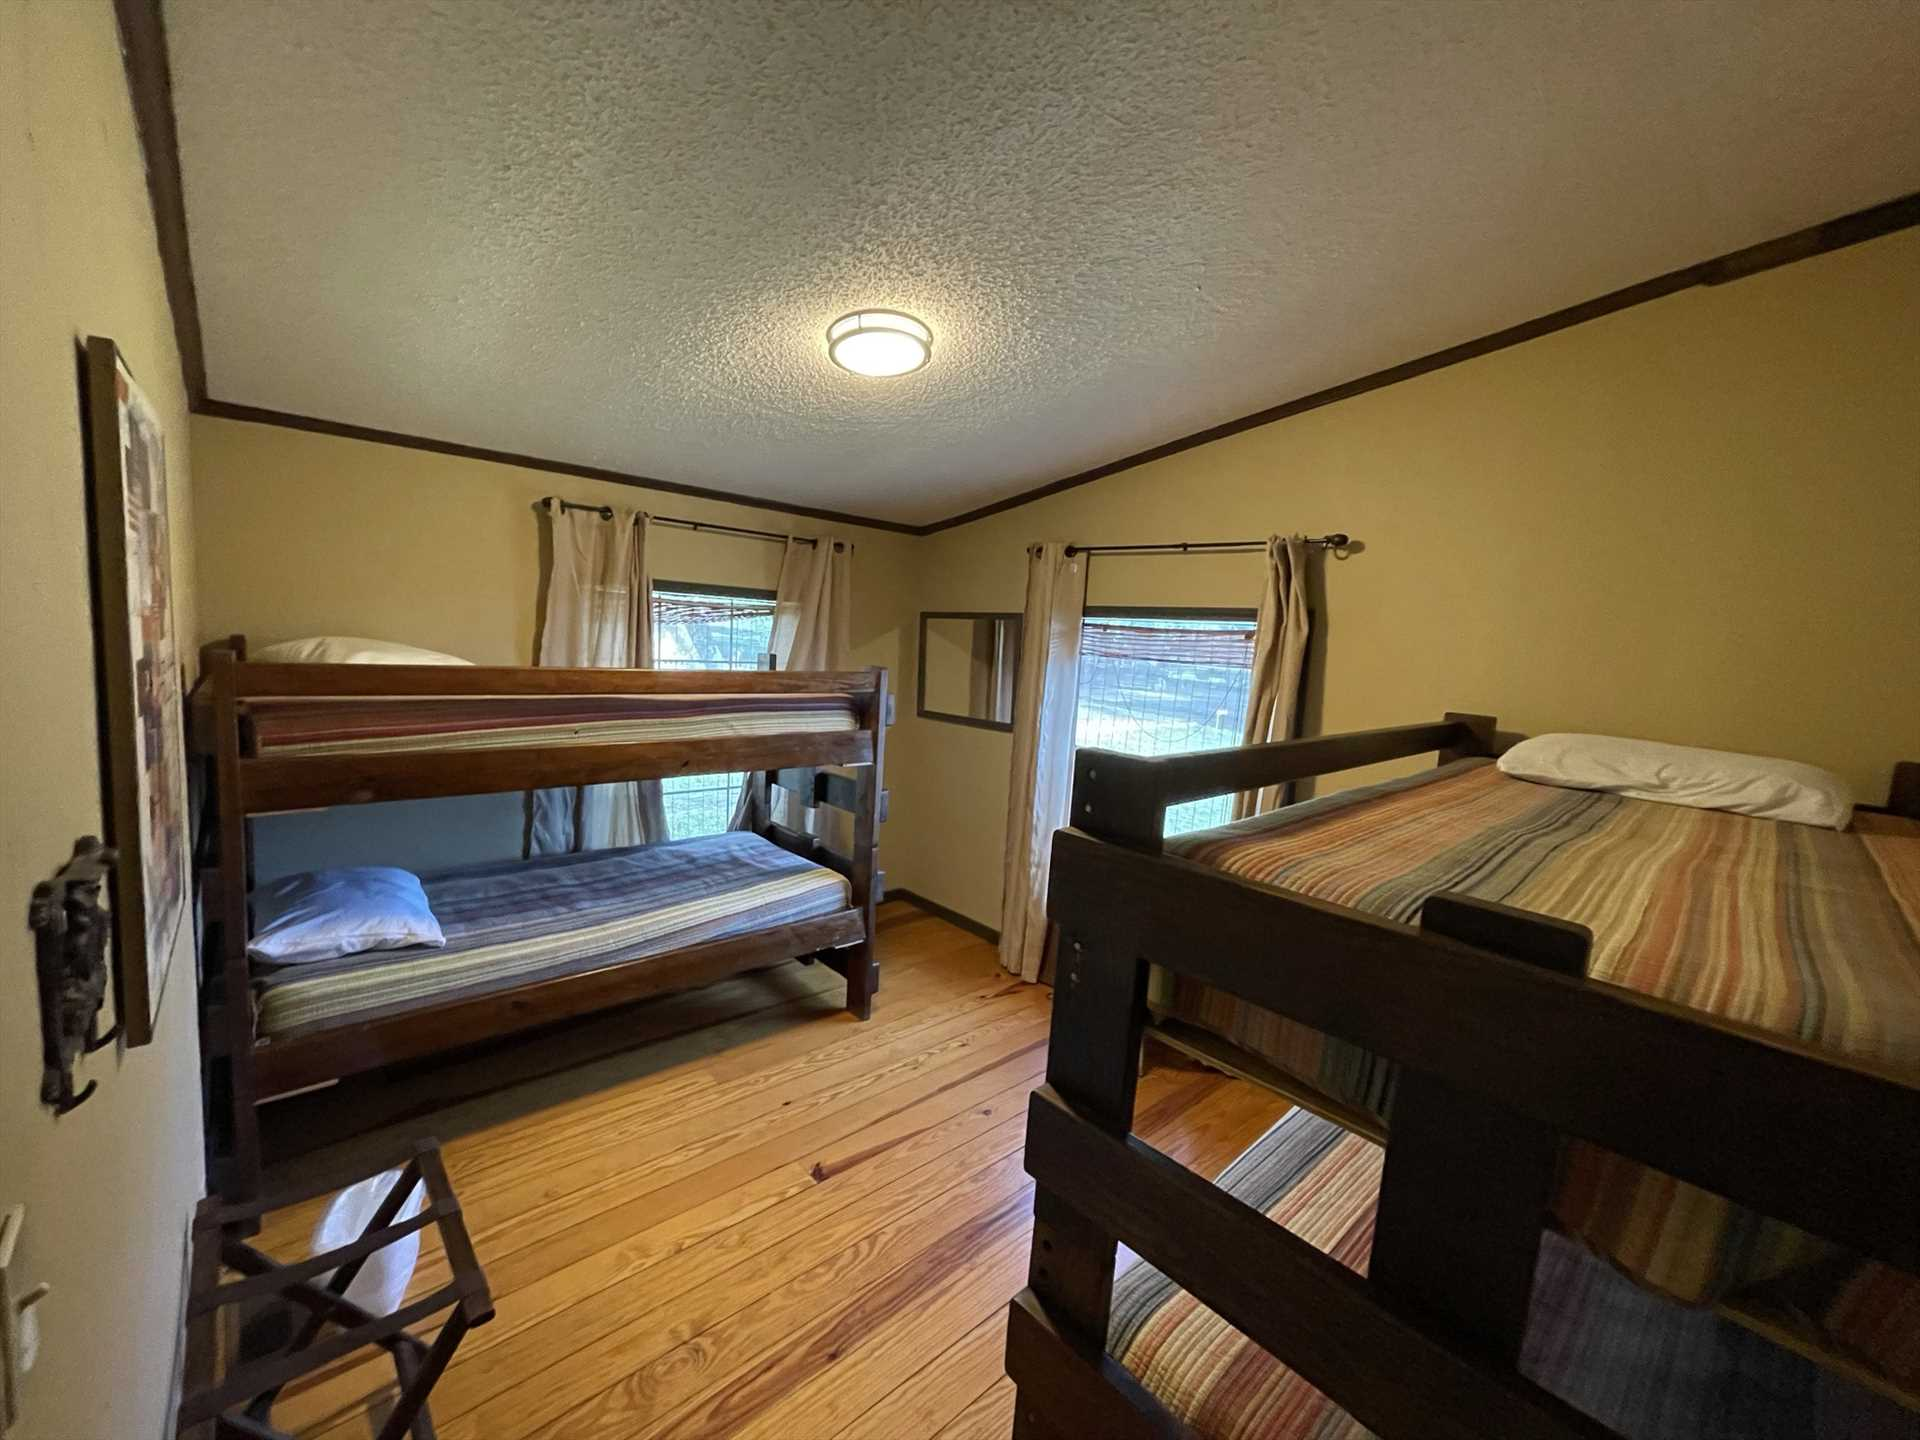 Two sets of twin bunk beds can be found in the second bedroom at Rio Vista, offering comfortable sleeping accommodations for up to four in this guest home.